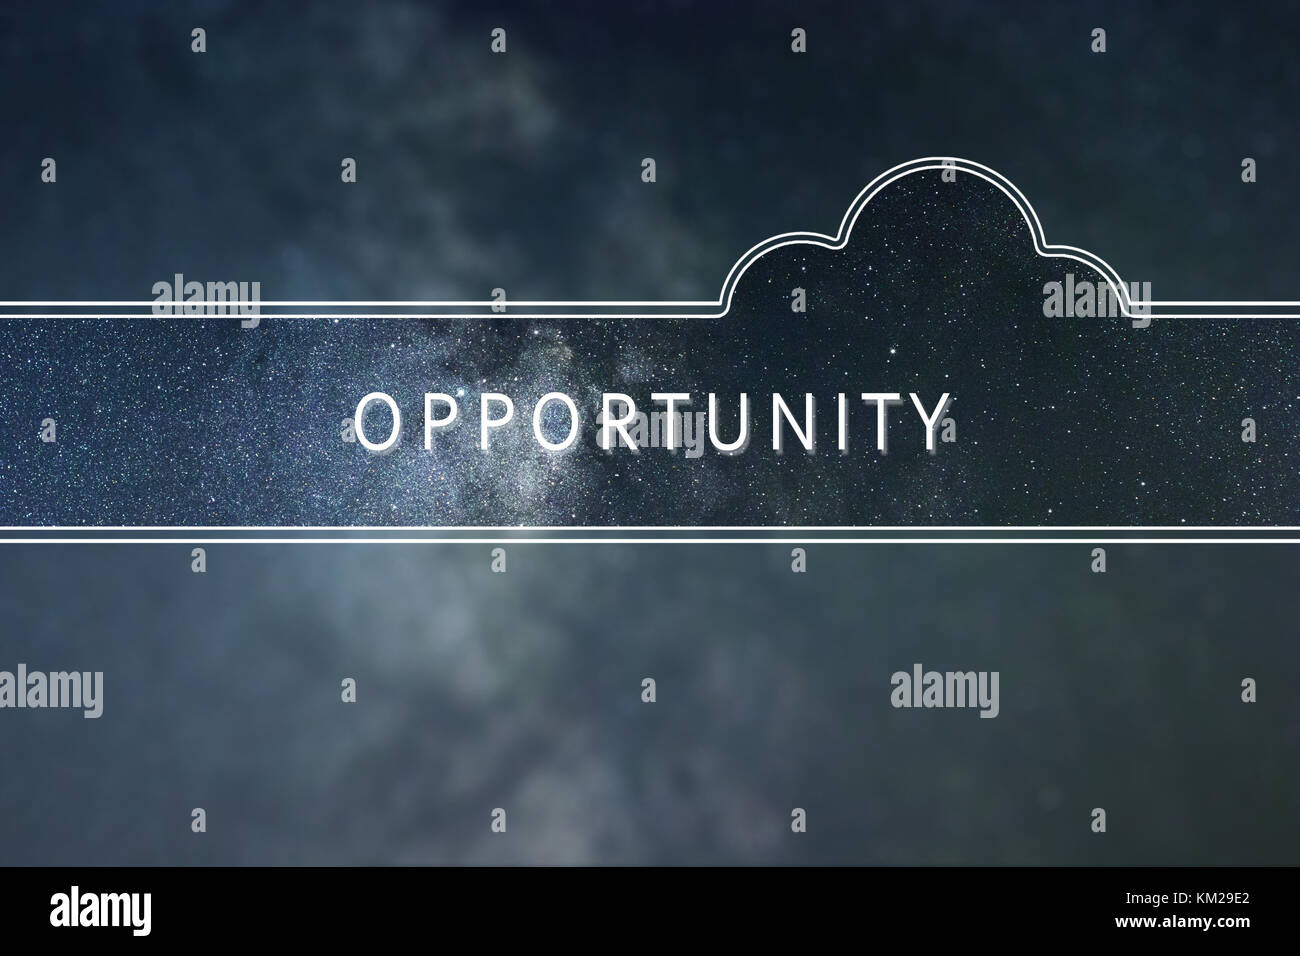 OPPORTUNITY word cloud Concept. Space background. - Stock Image